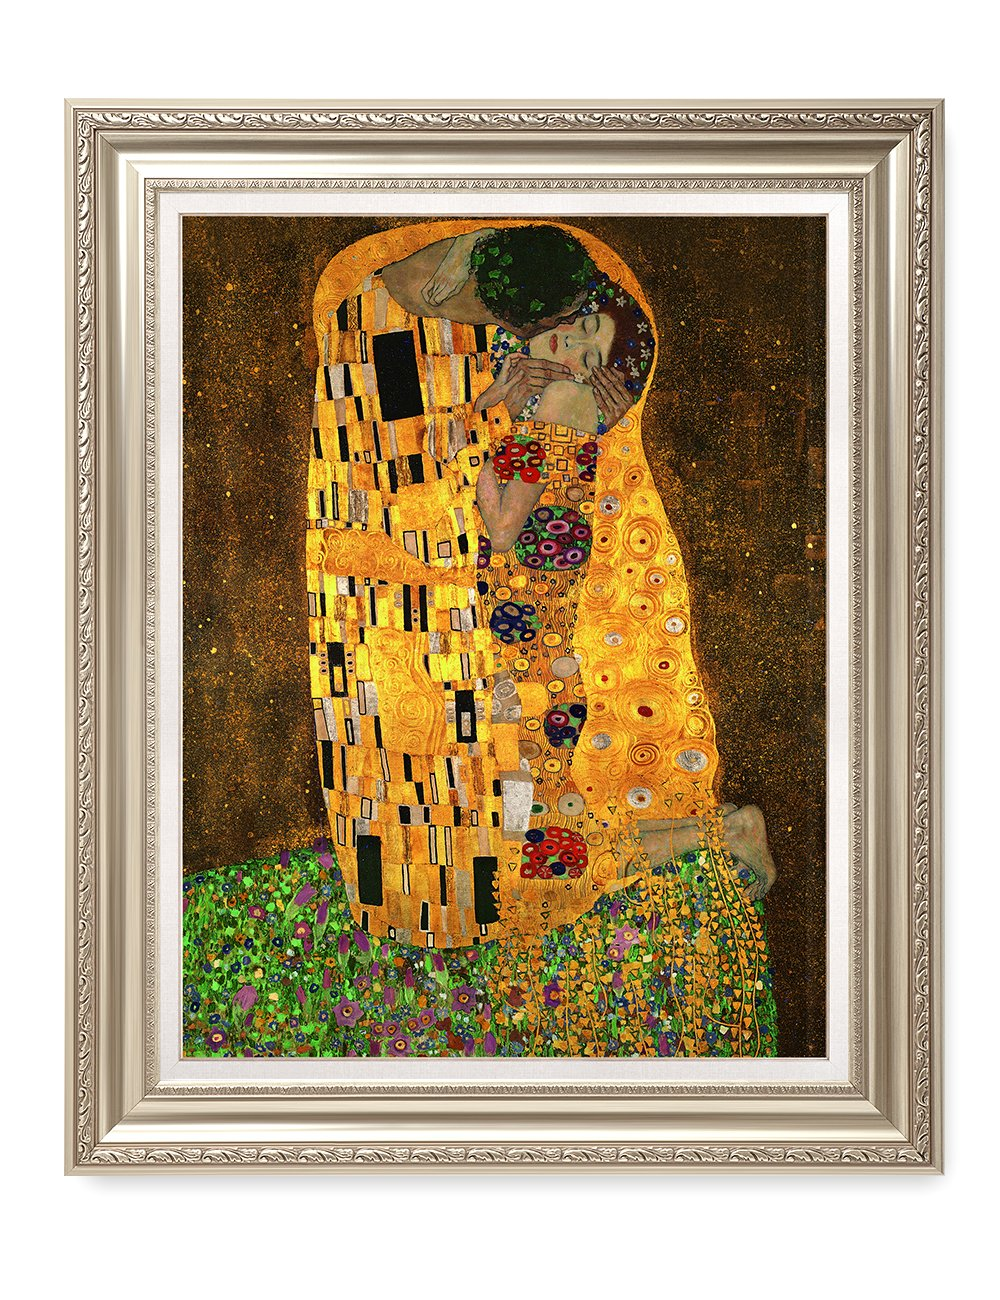 DecorArts - The Kiss, by Gustav Klimt. Giclee Print& Museum Quality Framed Art for Wall Decor. 24x30'', Frame size: 30x36''